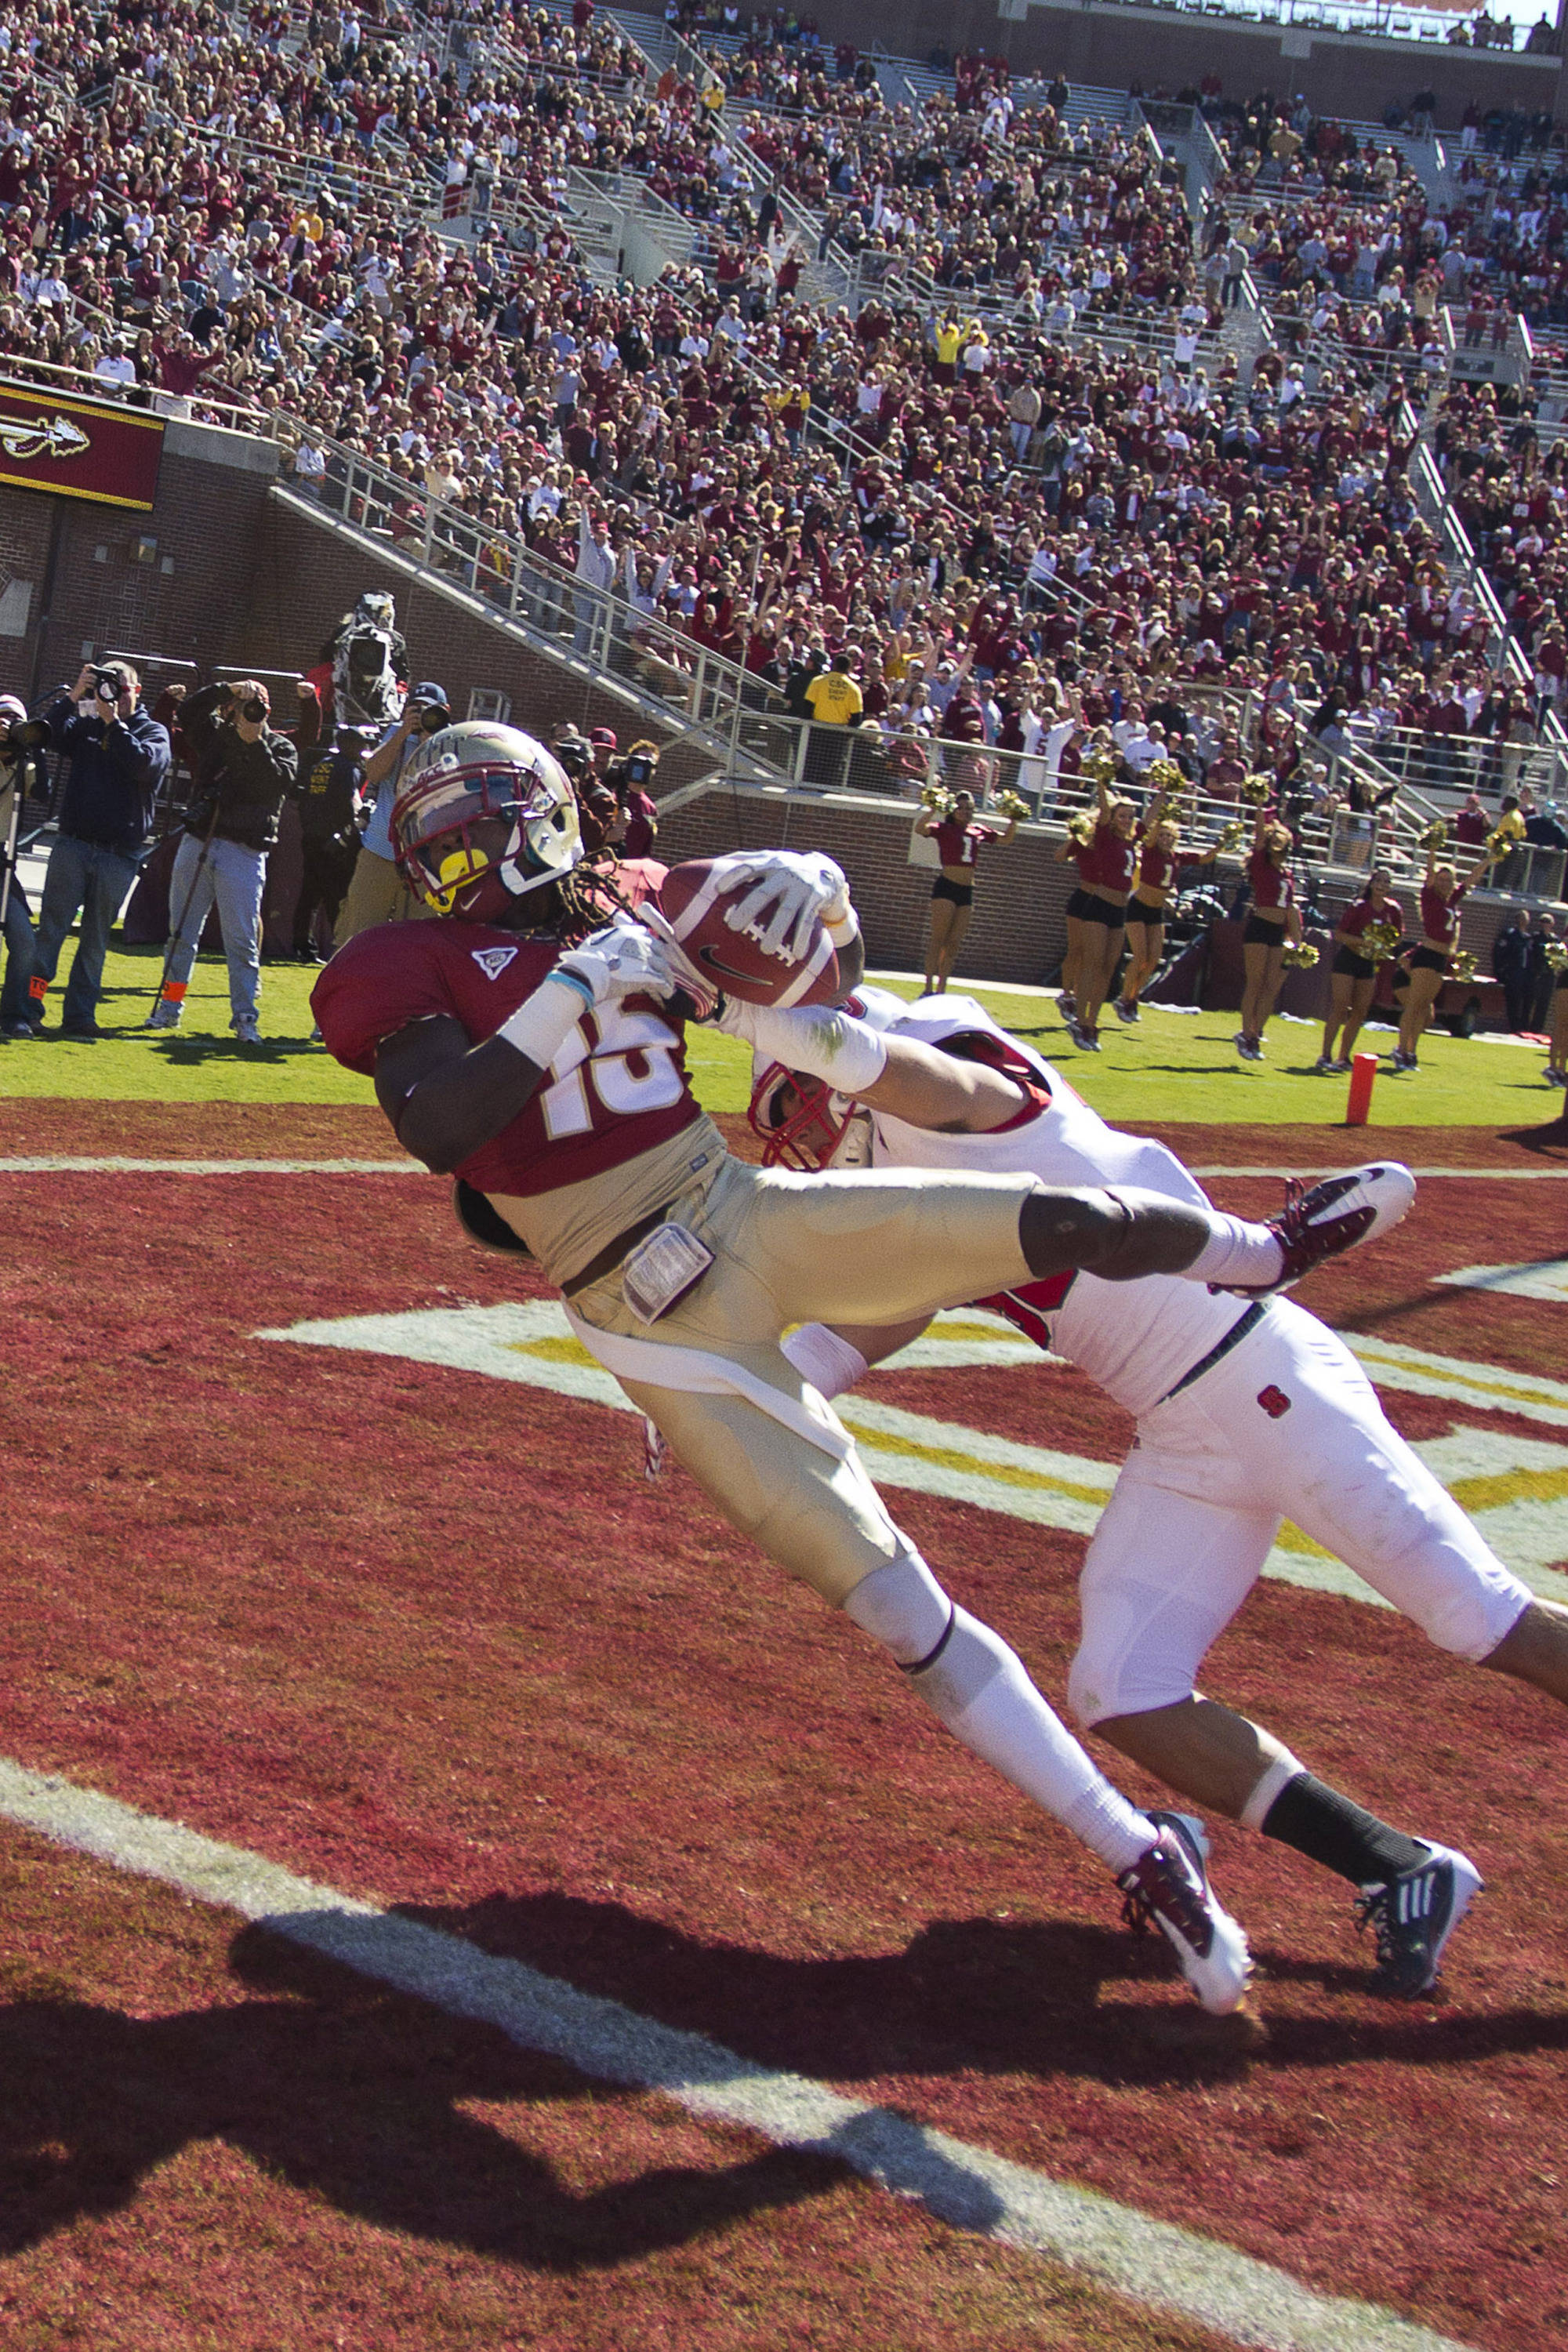 Greg Dent (15) gets a foot in the end zone to score after making a jumping catch during the football game against NC State on October 29, 2011.